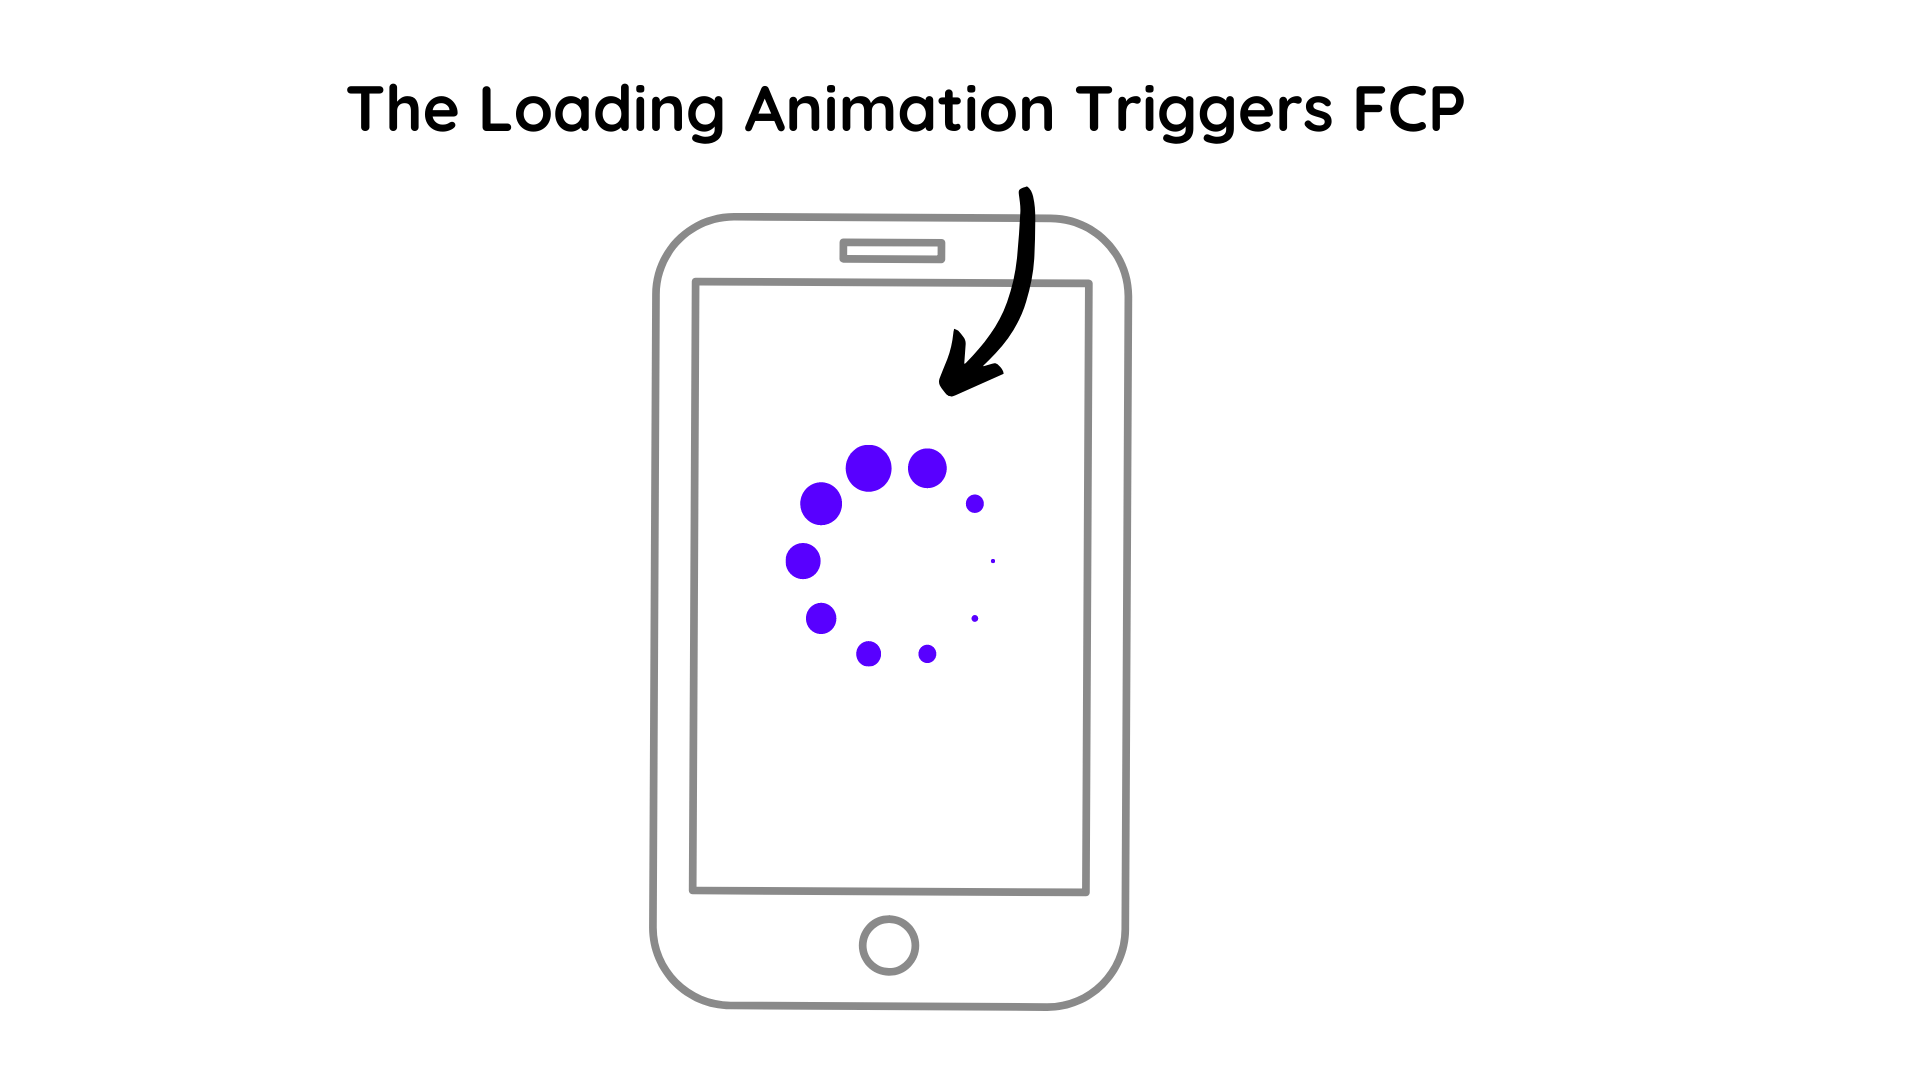 LCP Example - Loading Animation